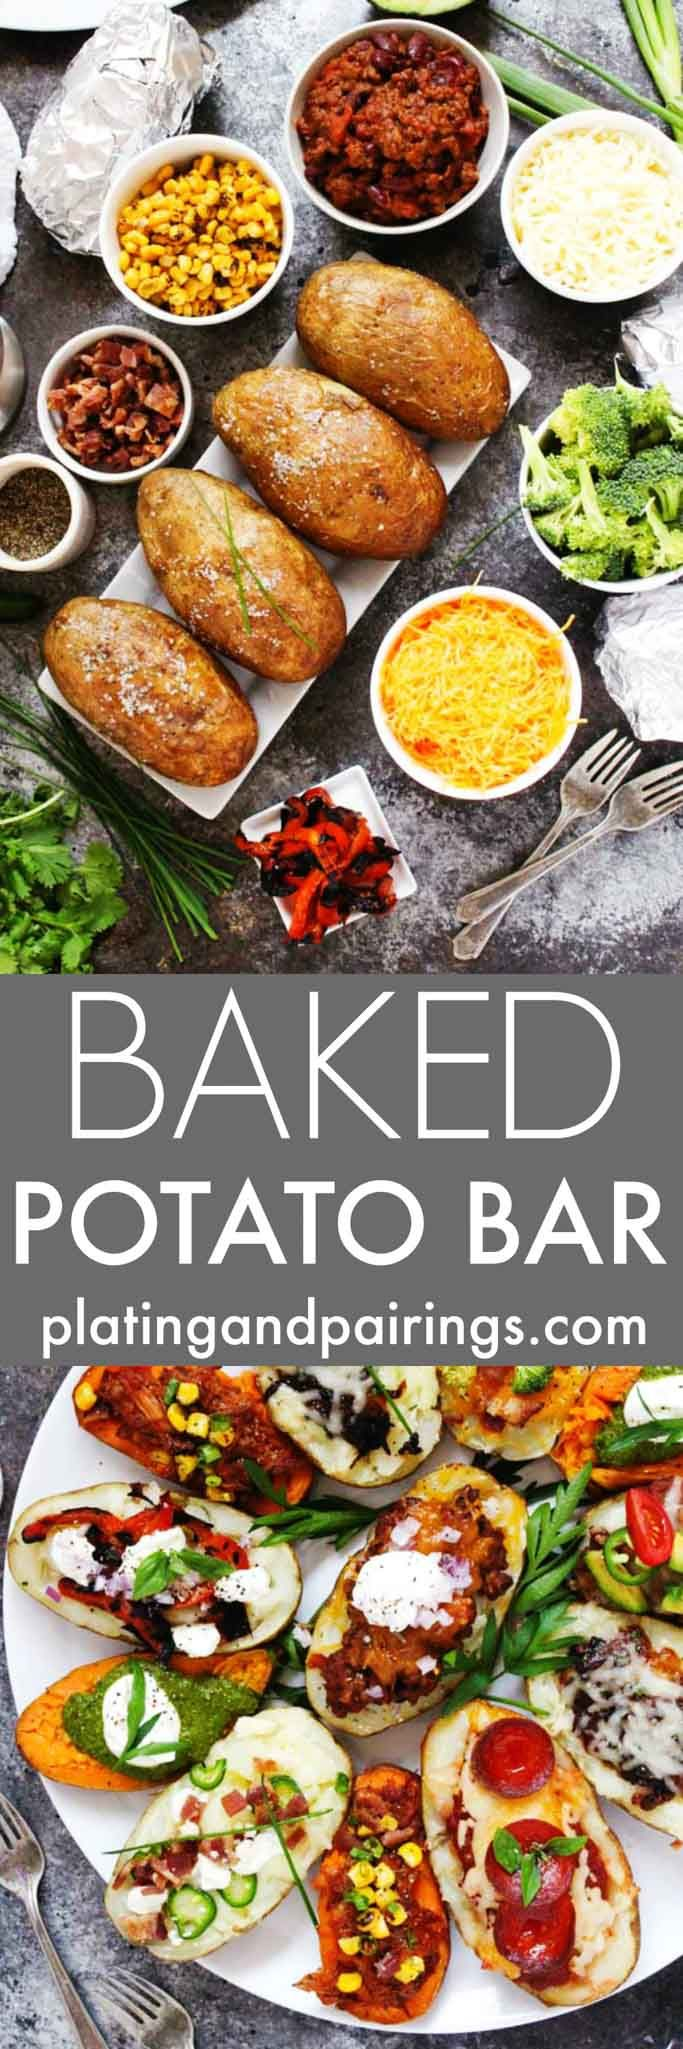 "Create a Grilled ""Baked"" Potato Bar for your next party, potluck or tailgating…"